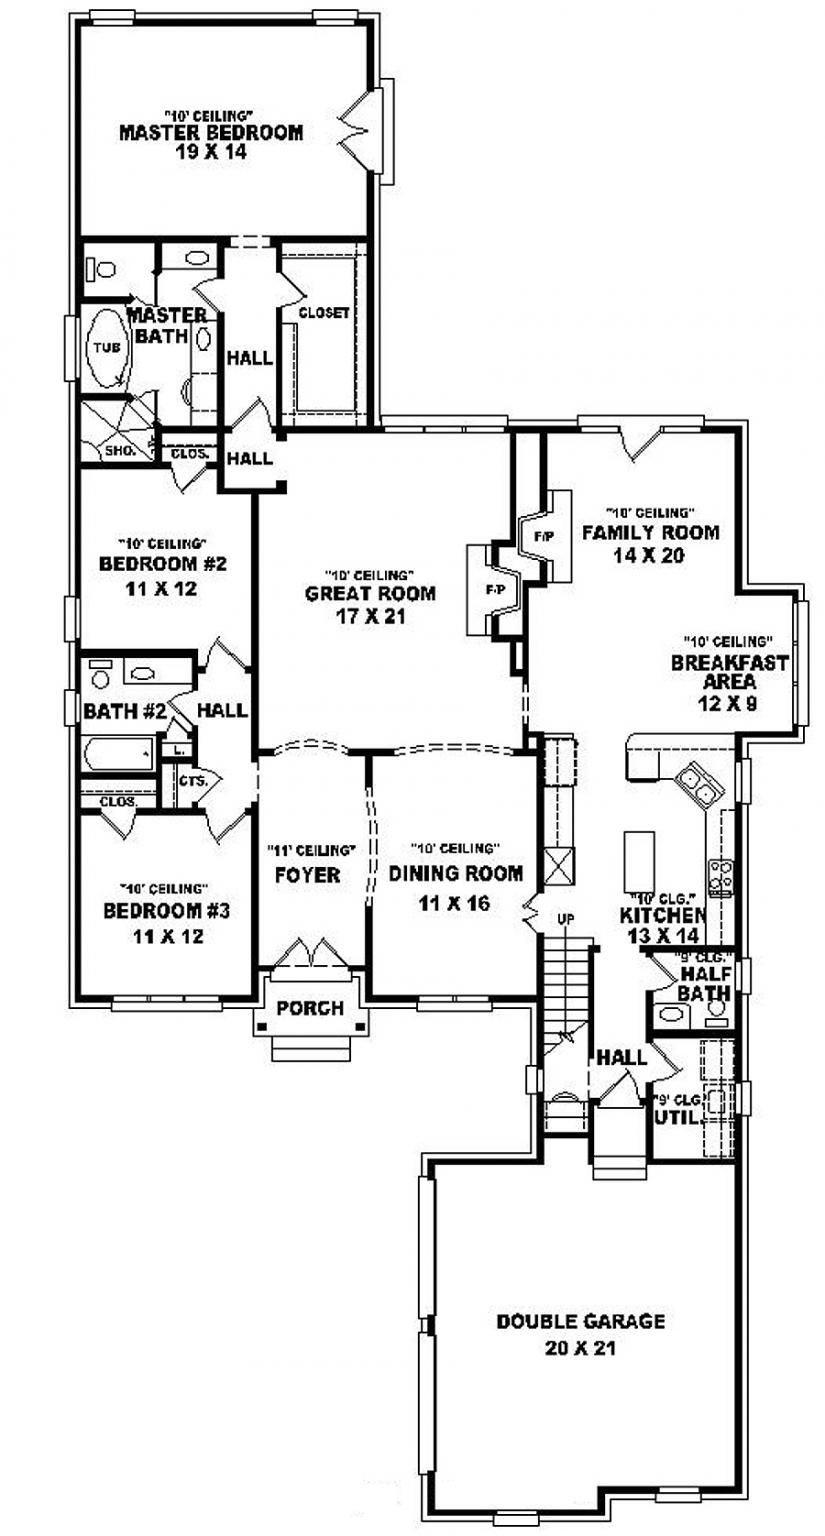 Attractive #654015   One And A Half Story 3 Bedroom, 2.5 Bath French Style House Plan  : House Plans, Floor Plans, Home Plans, Plan It At HousePlanIt.co.